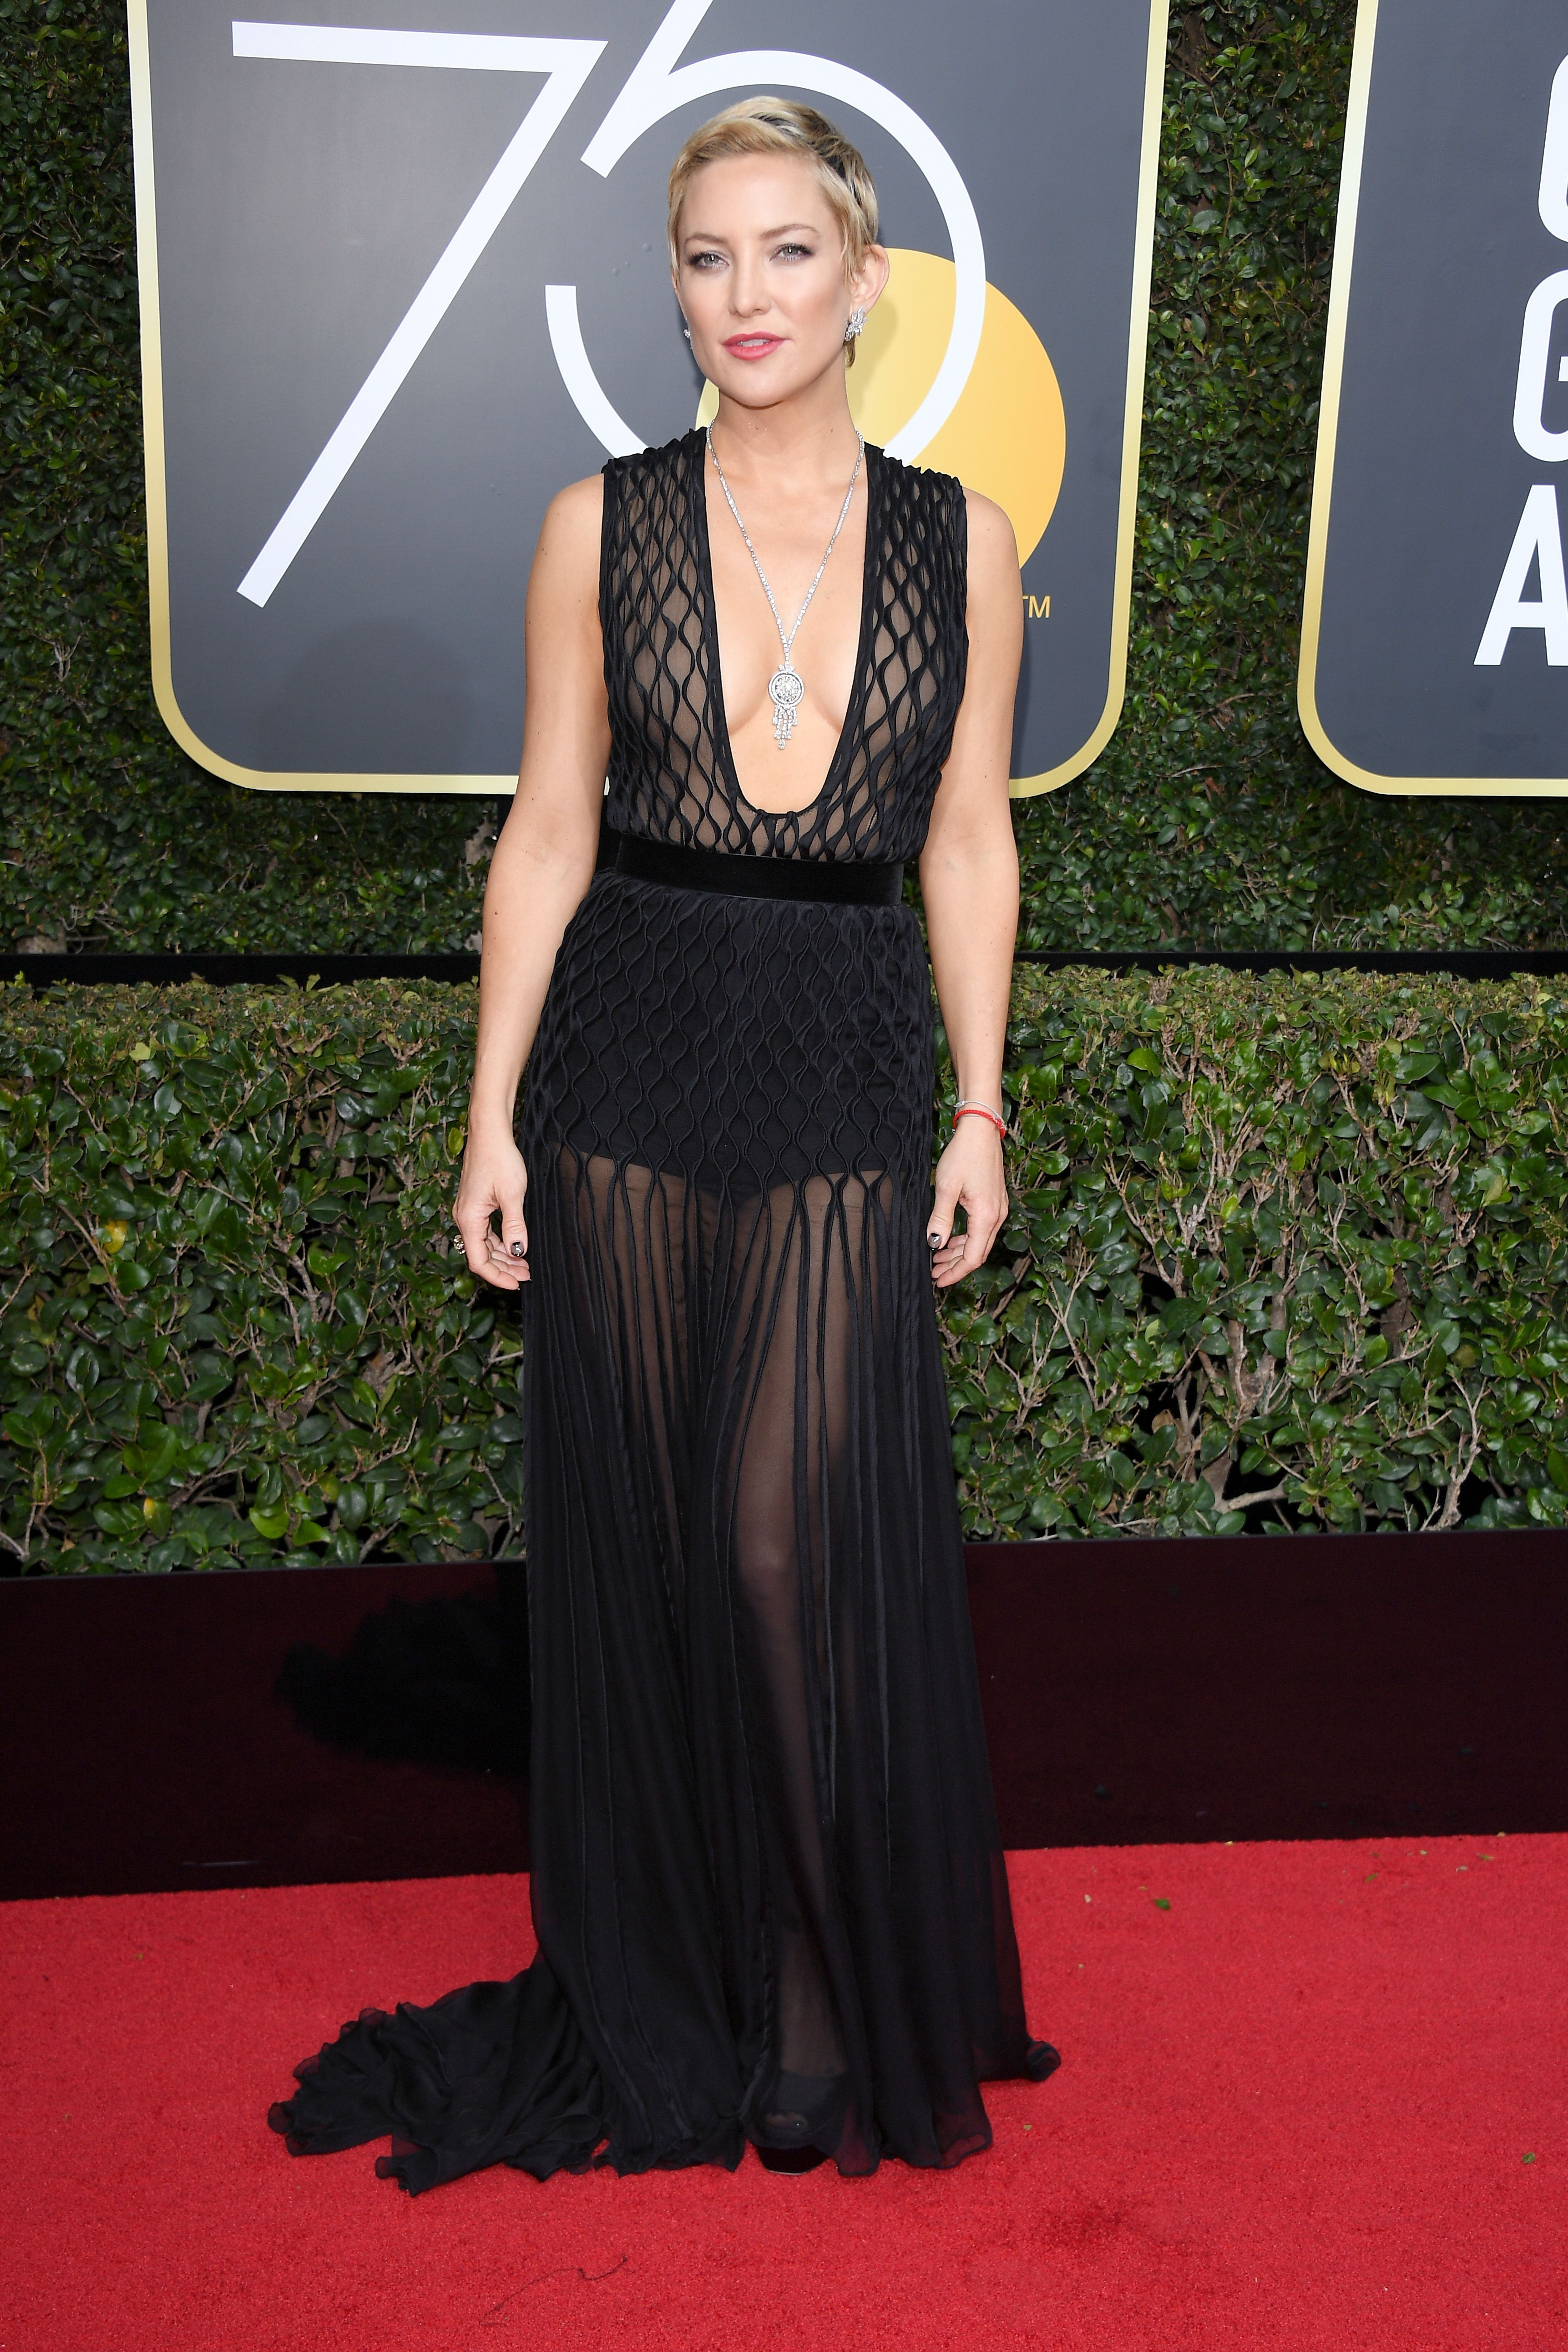 The Golden Globes Weekend Looks You Didn't See